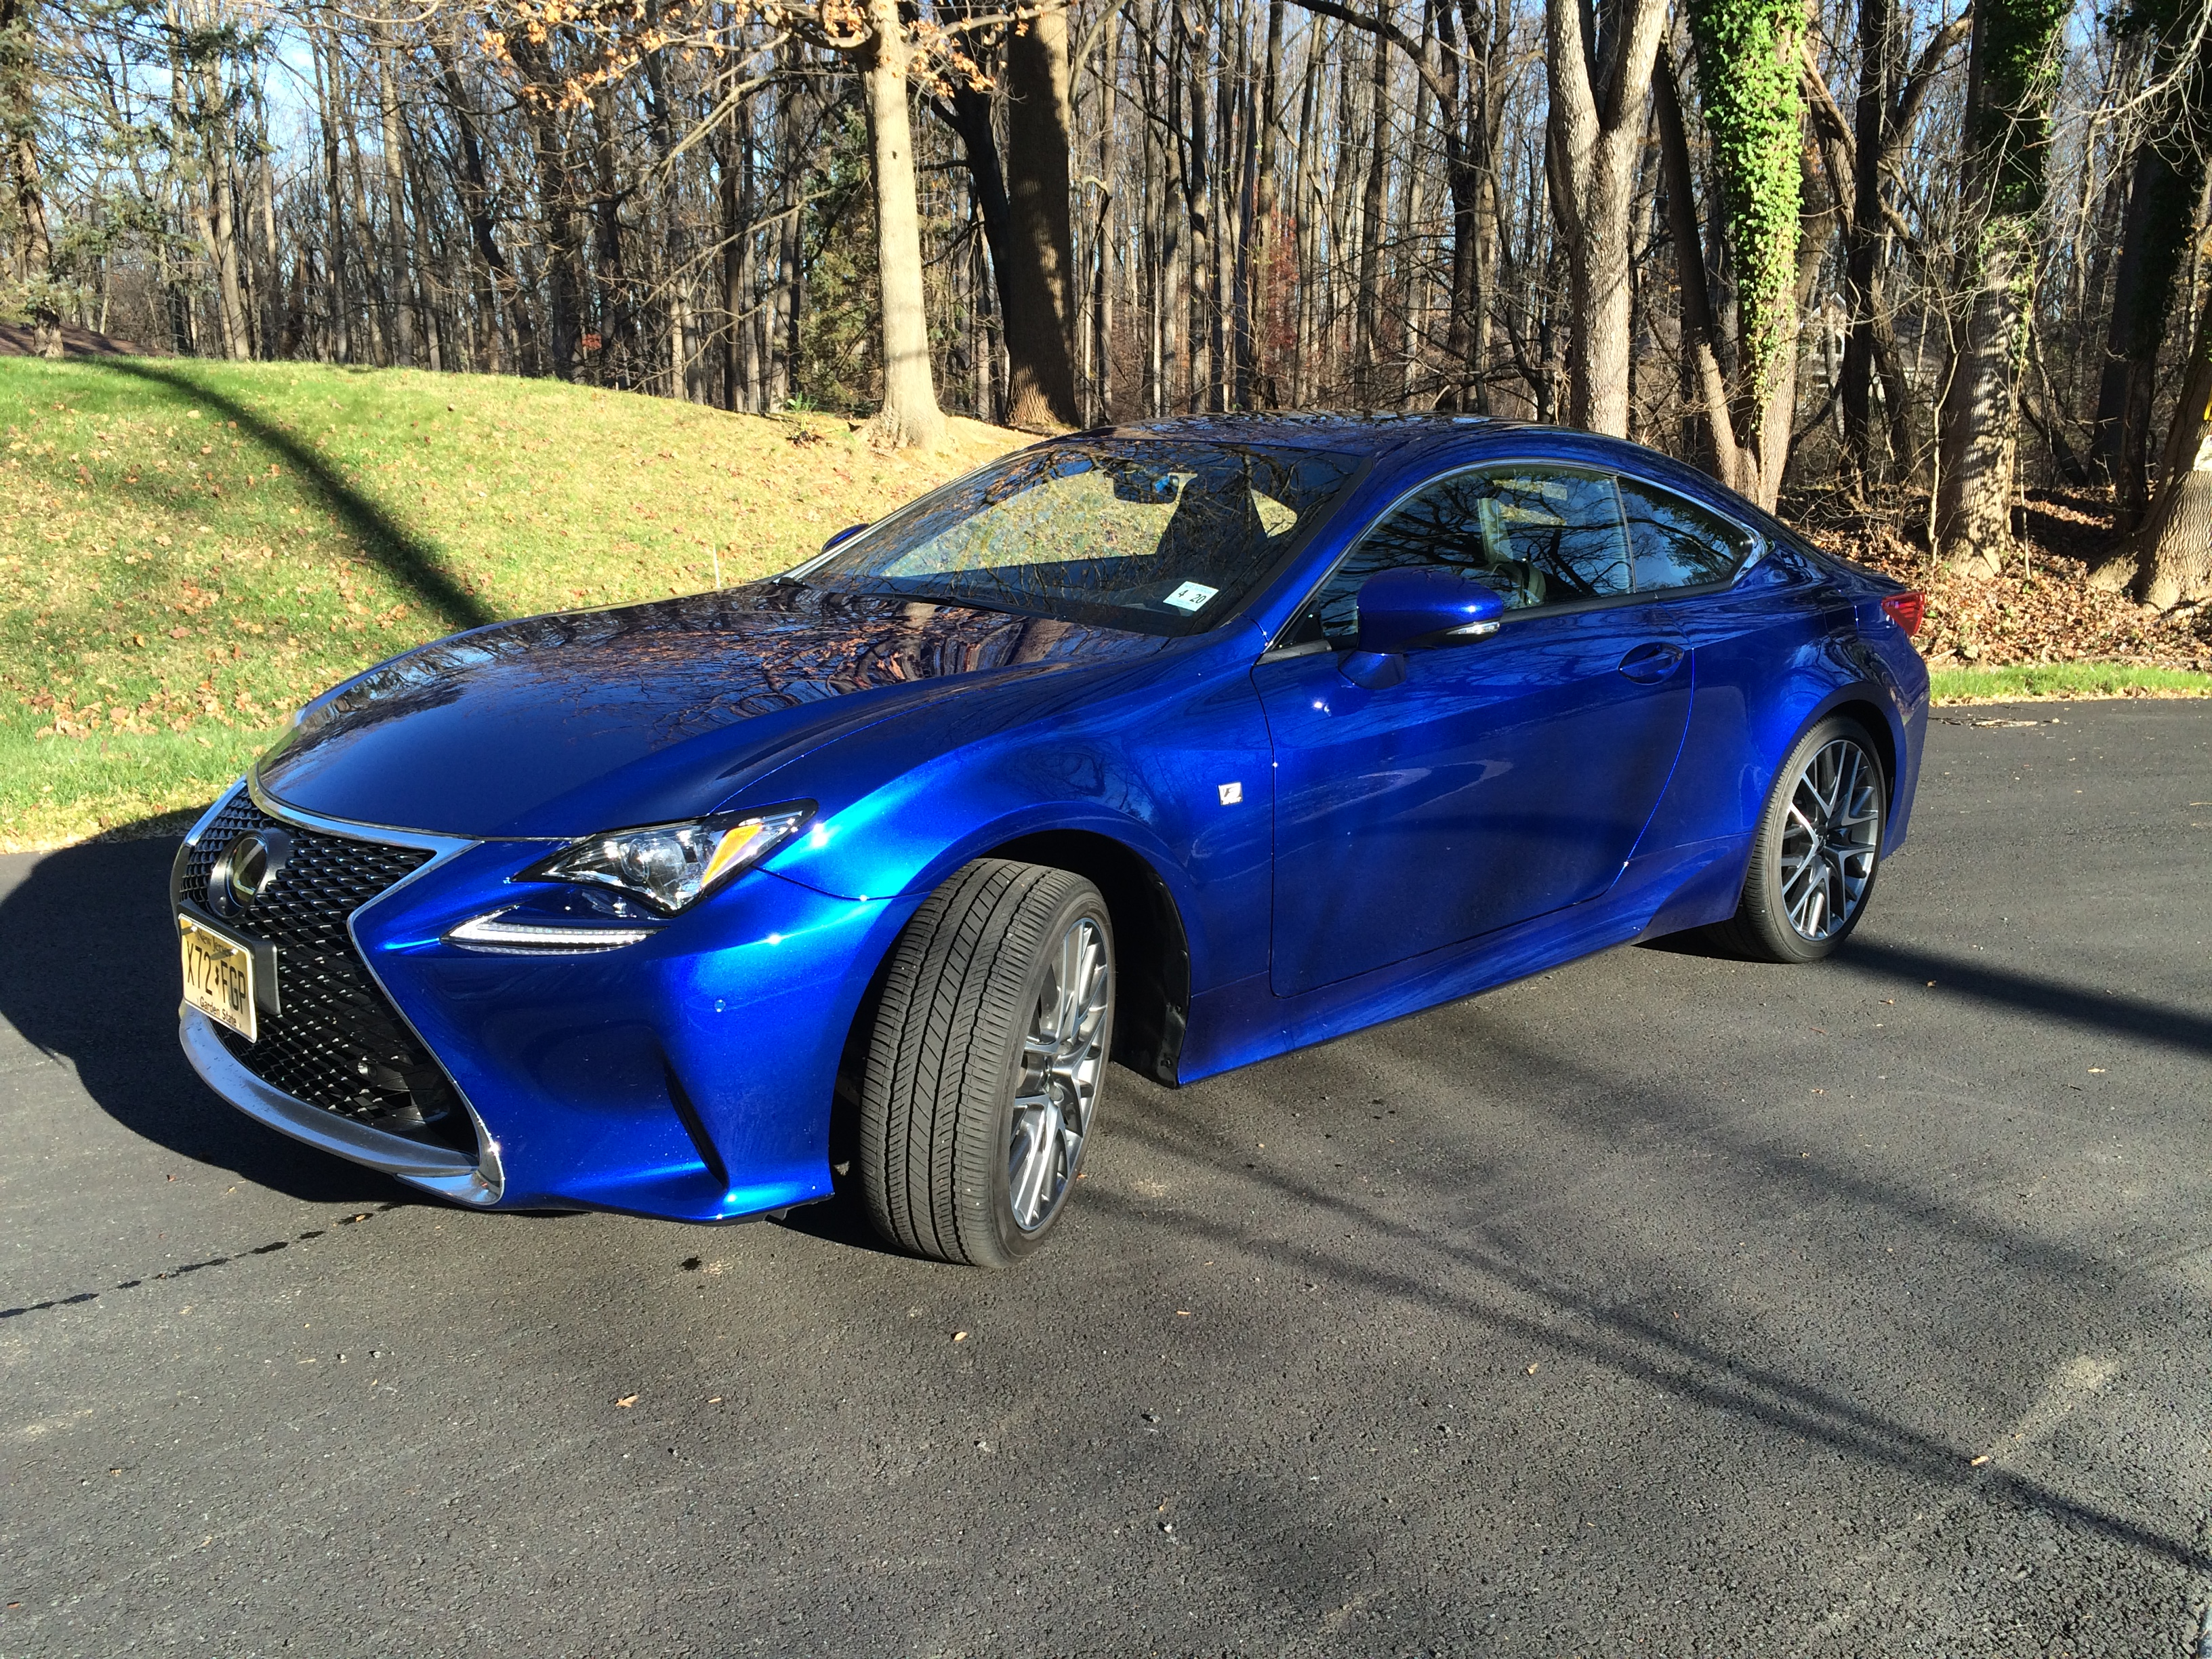 Lexus Rc 350 A Stylish Coupe With Awd That Can Be Used